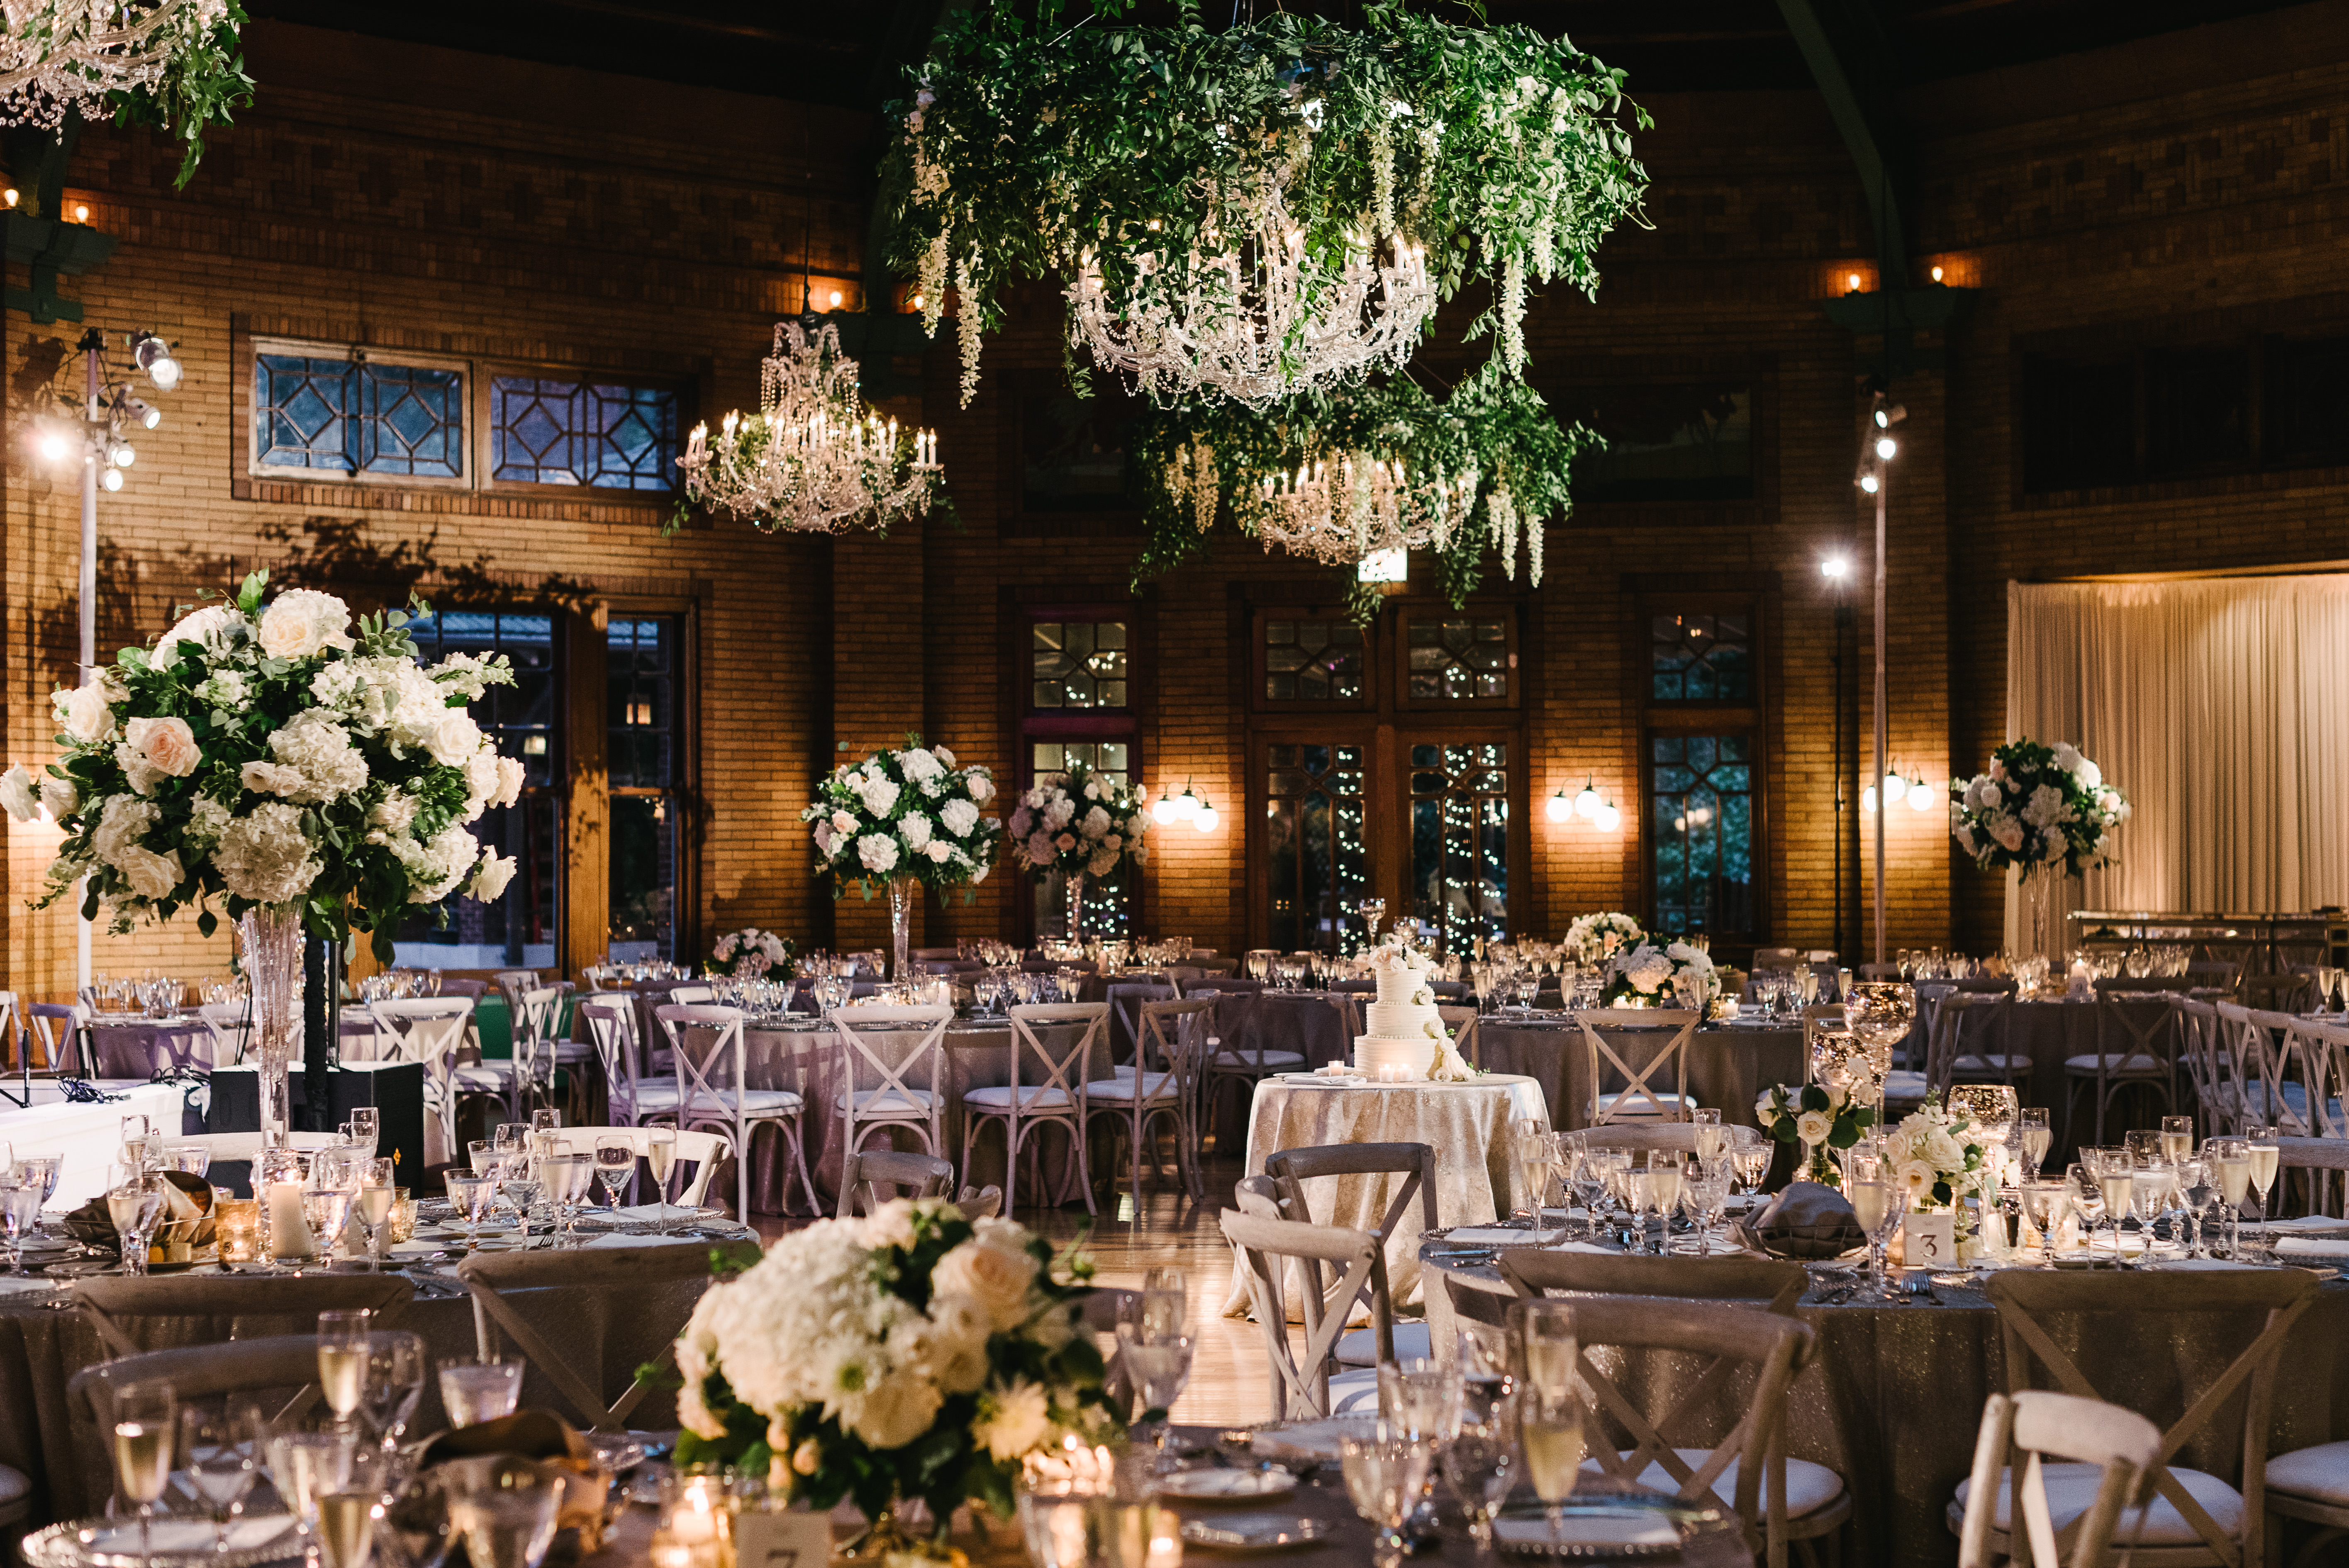 A recent wedding at Cafe Brauer designed by Natalie. Photo by: T&S Photography.